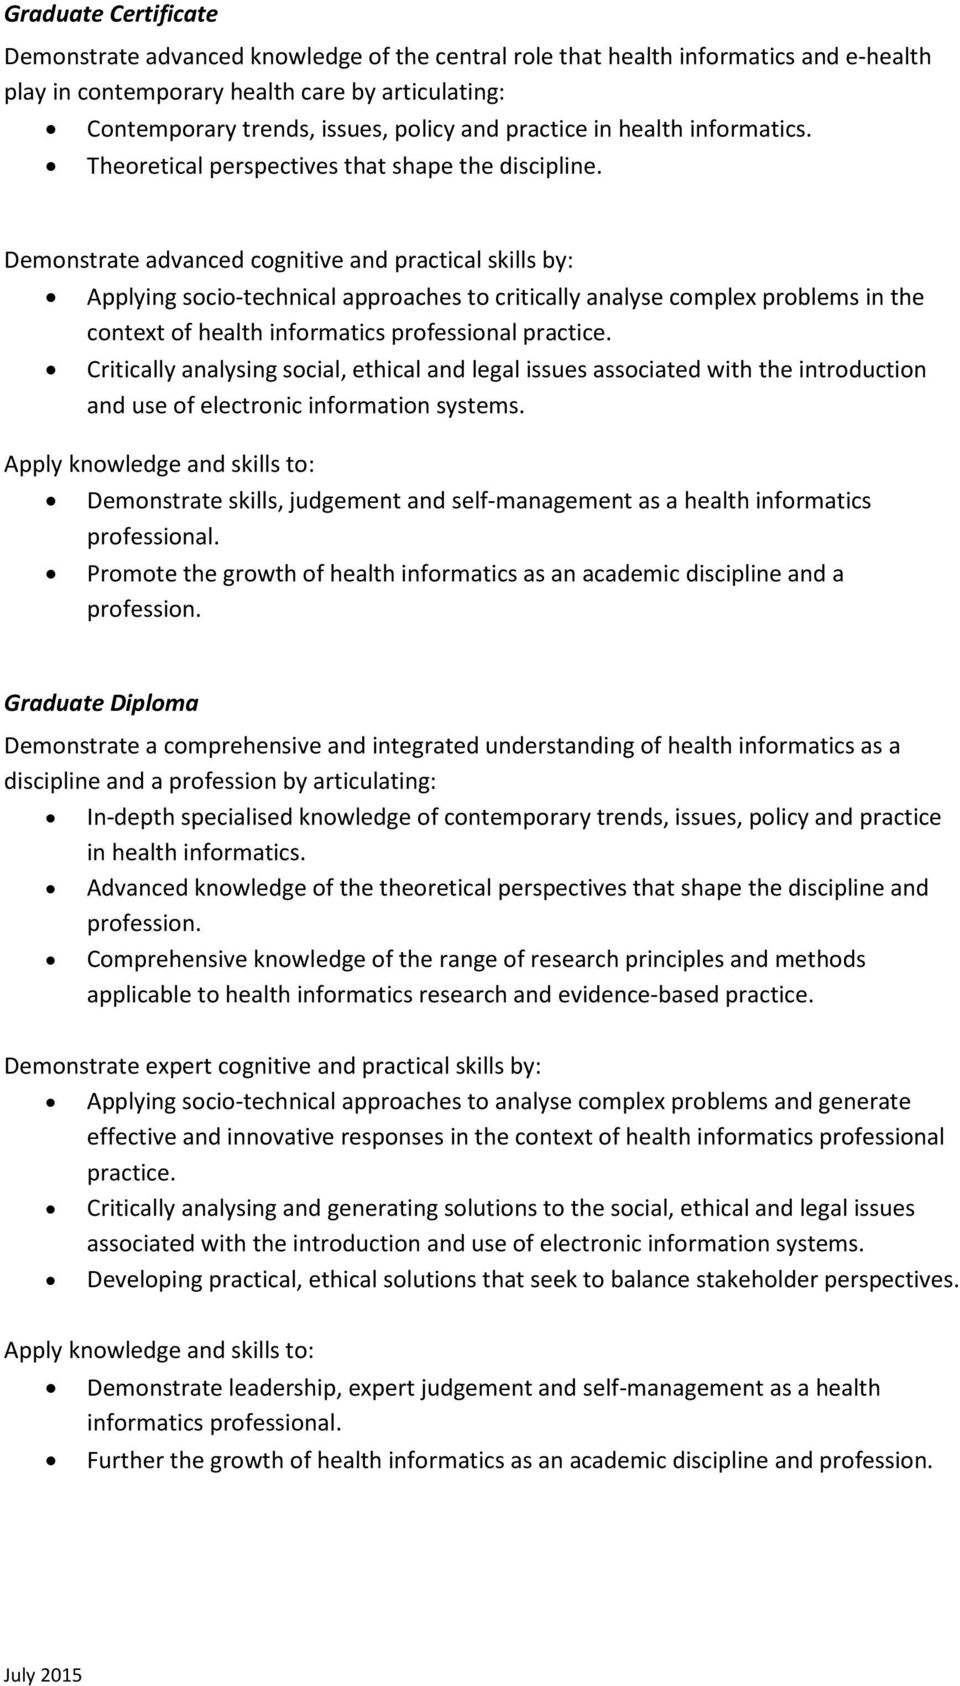 Masters Of E Health Health Informatics Incorporating Graduate